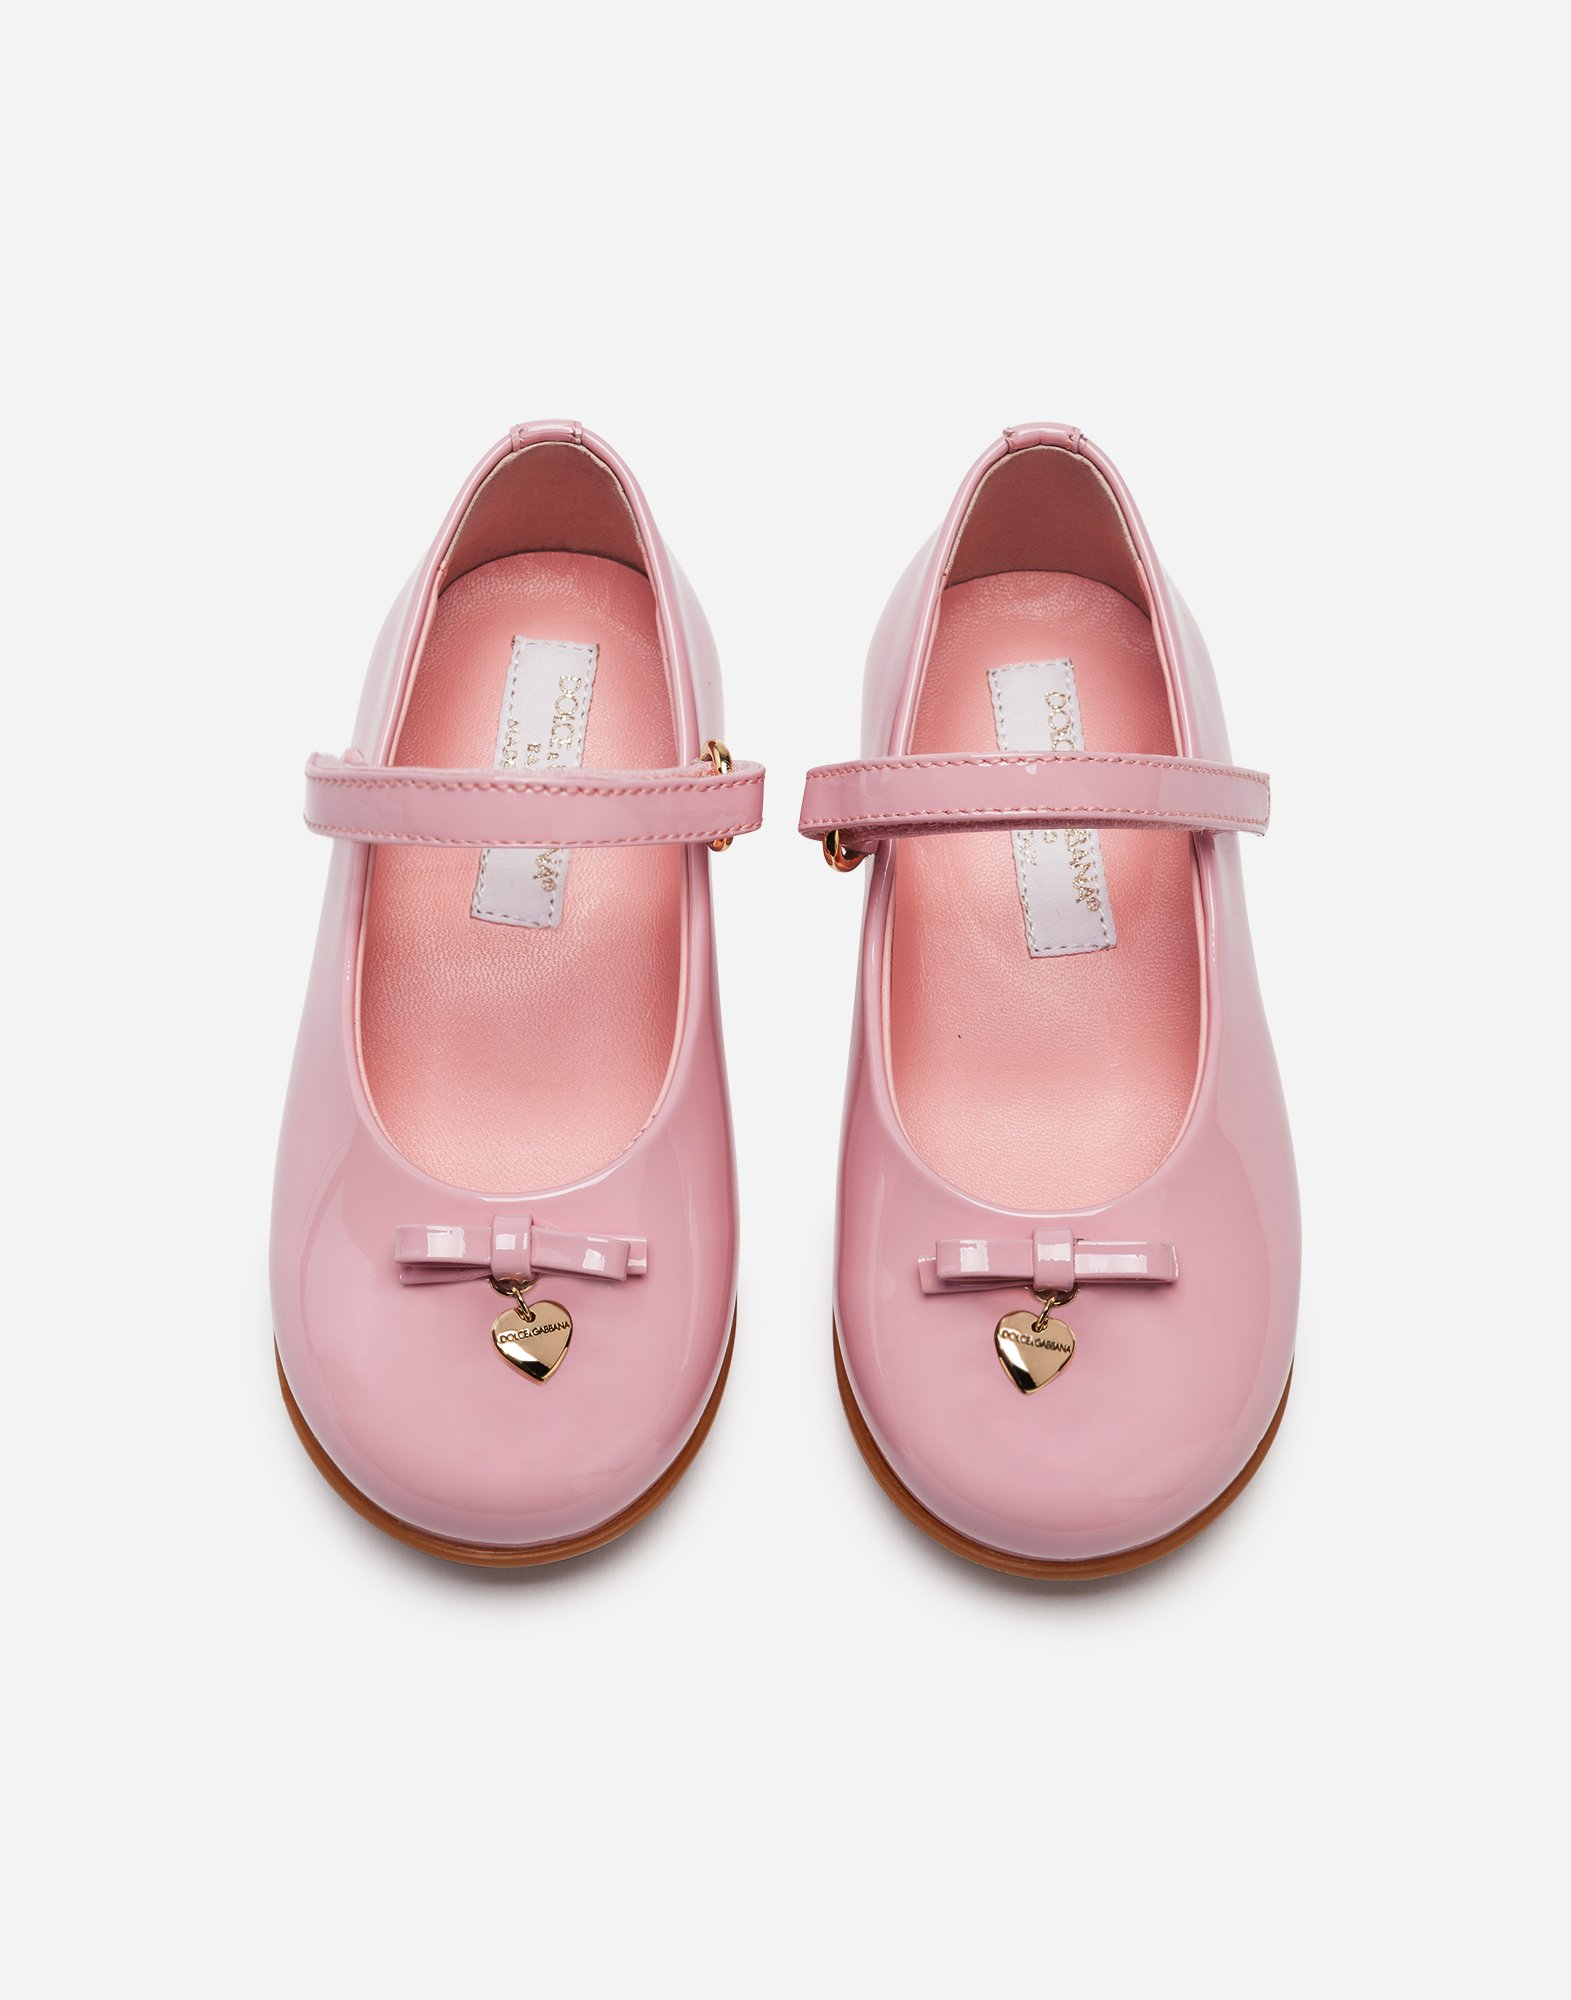 Dolce & Gabbana FIRST STEPS MARY JANE BALLET FLATS IN VARNISH